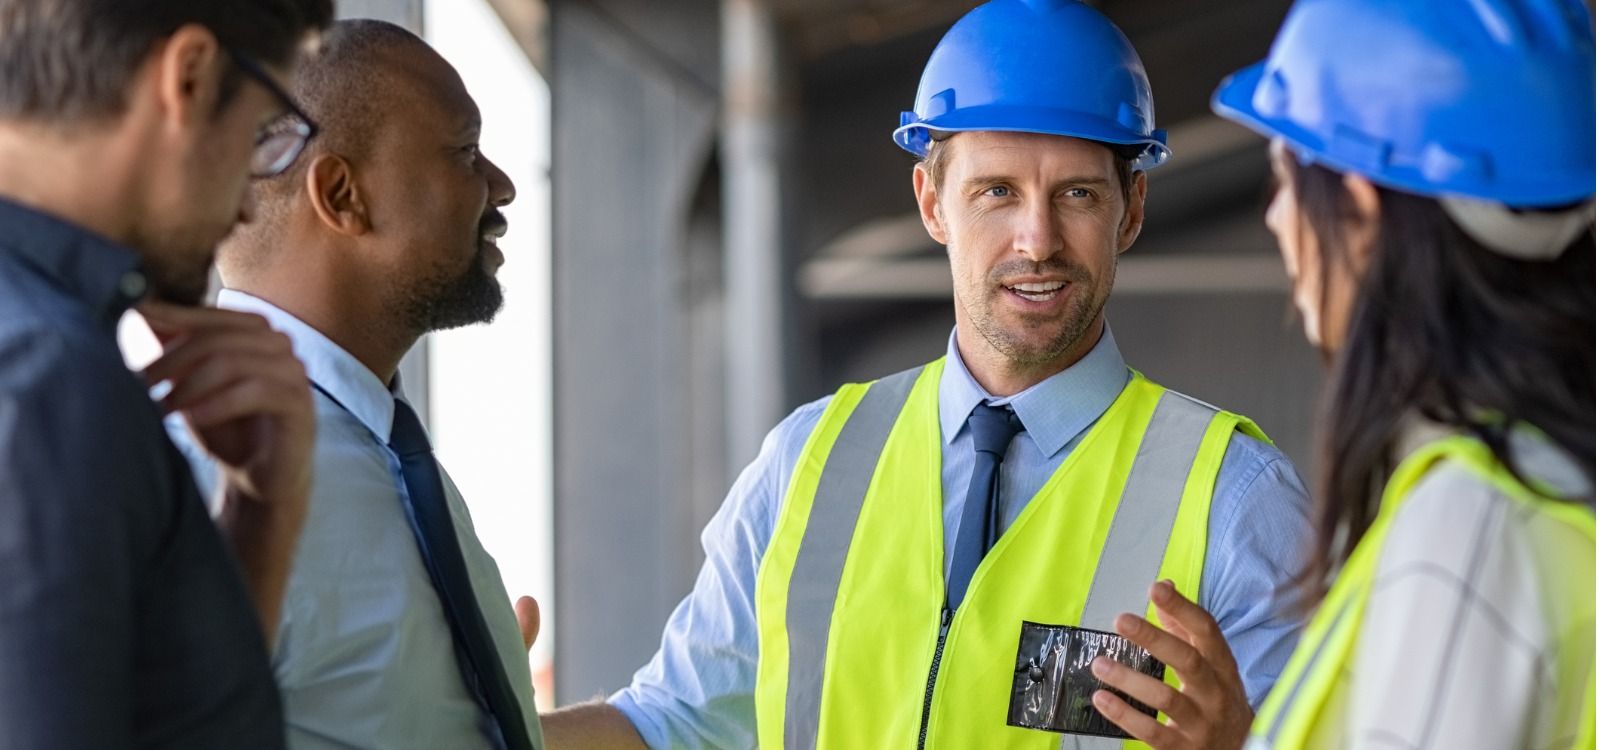 construction workers discussing a project at a construction site | Contractor Central 2.0 selling tool